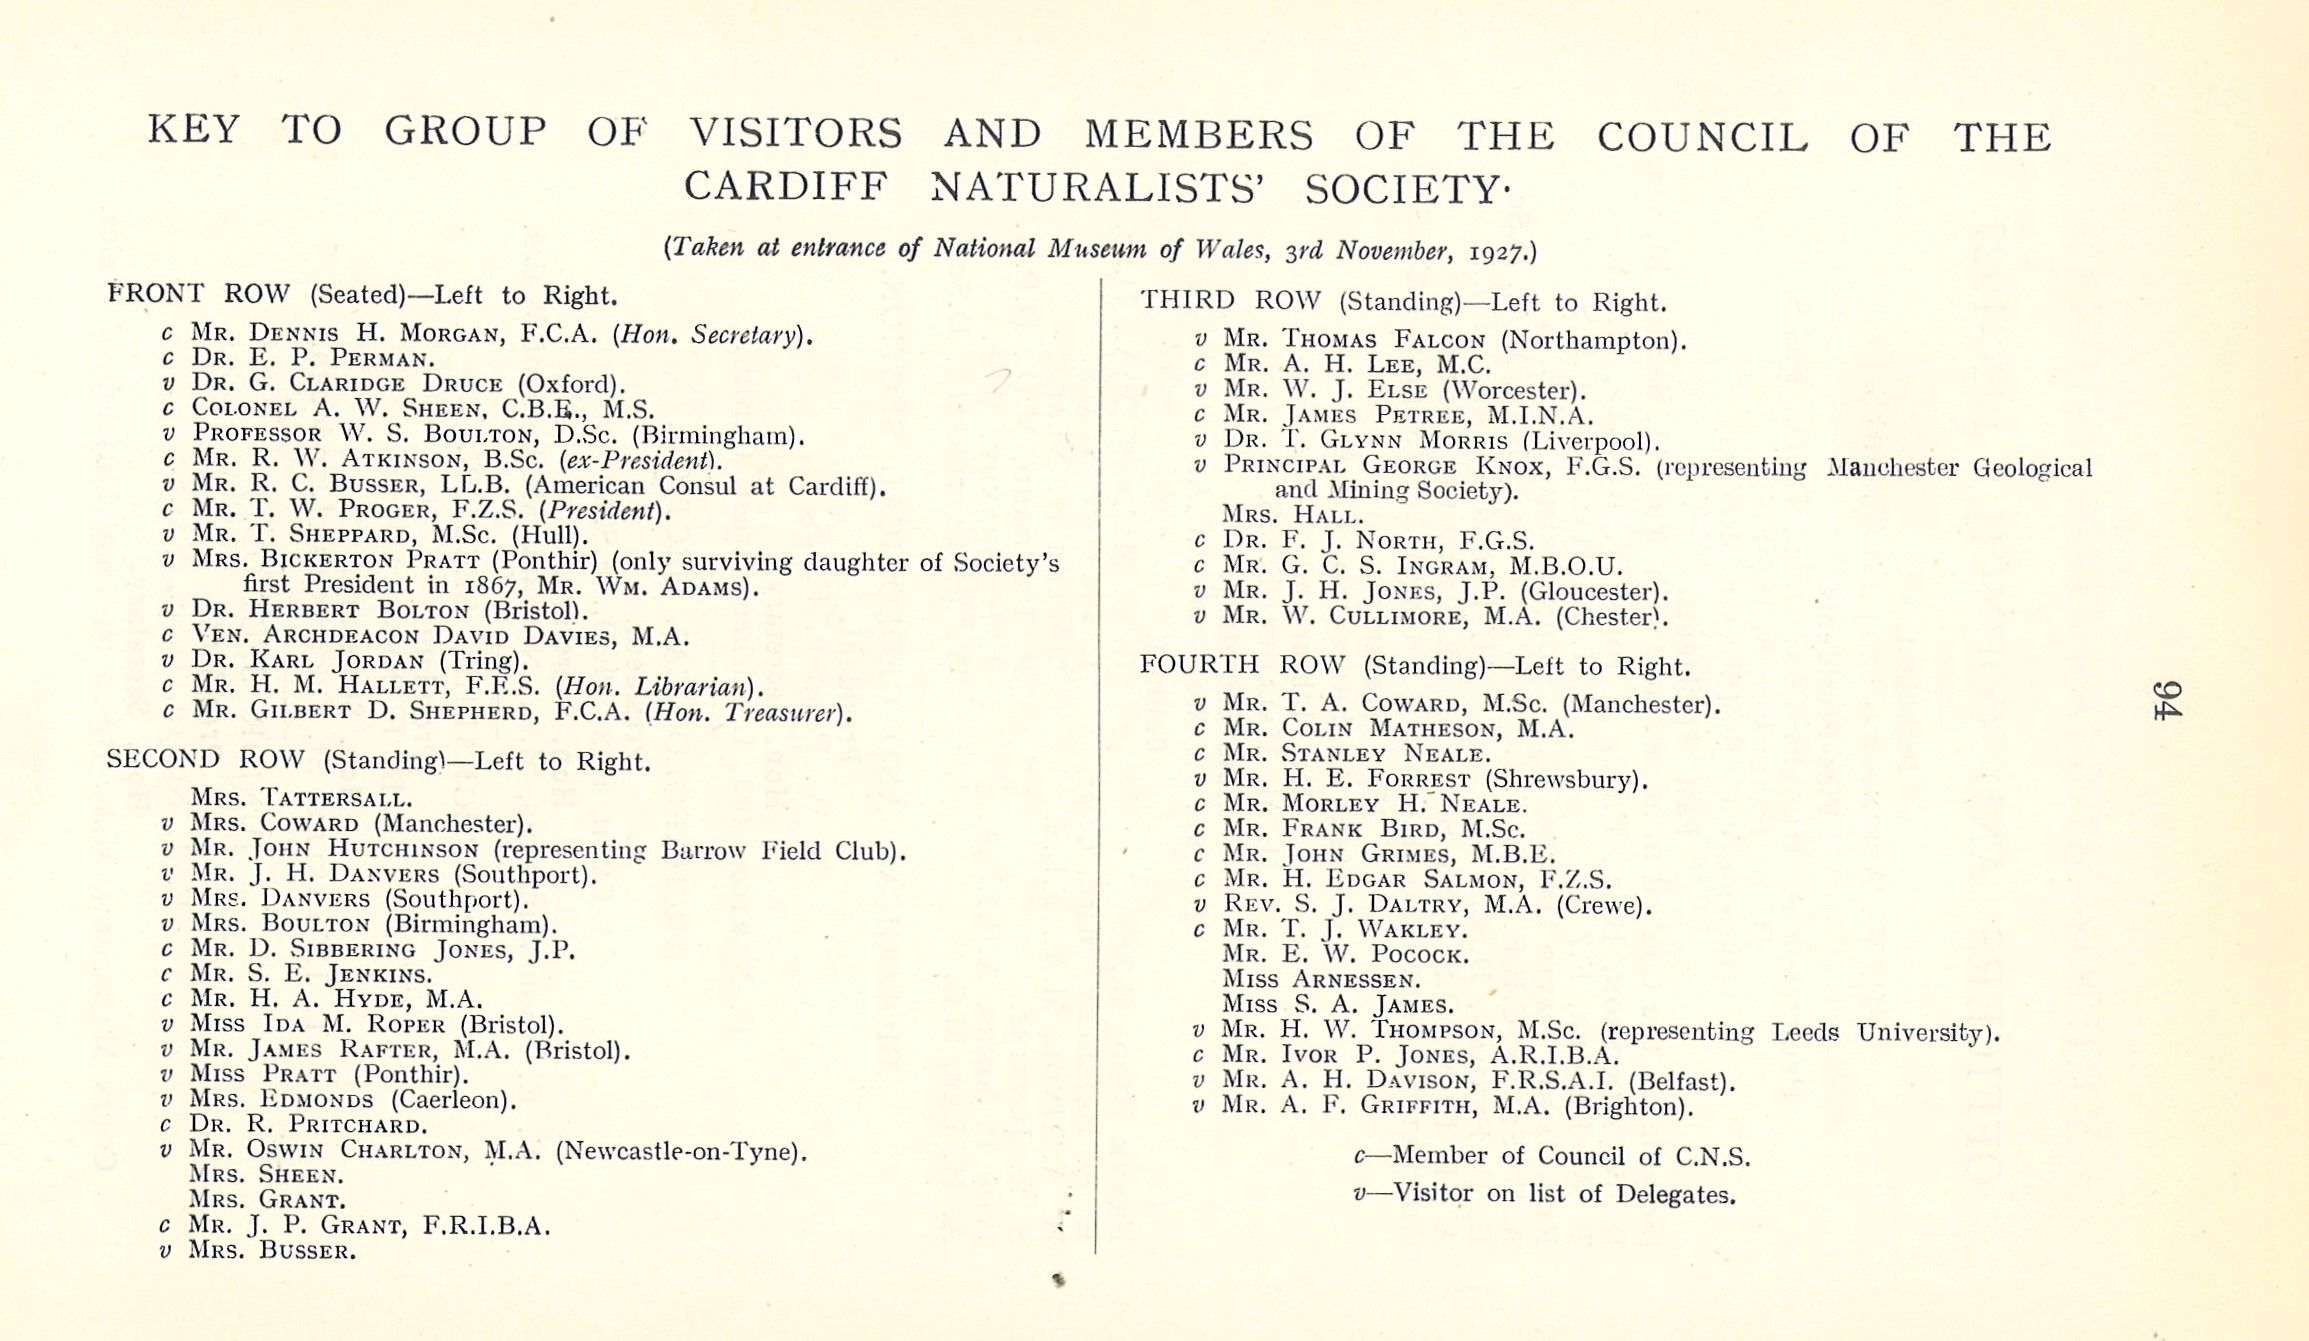 Cardiff Naturalists' Society visit National Museum Wales in 1927 as part of their Diamond Jubilee celebrations [guide to photo above] Both images from CNS Transactions volume 60